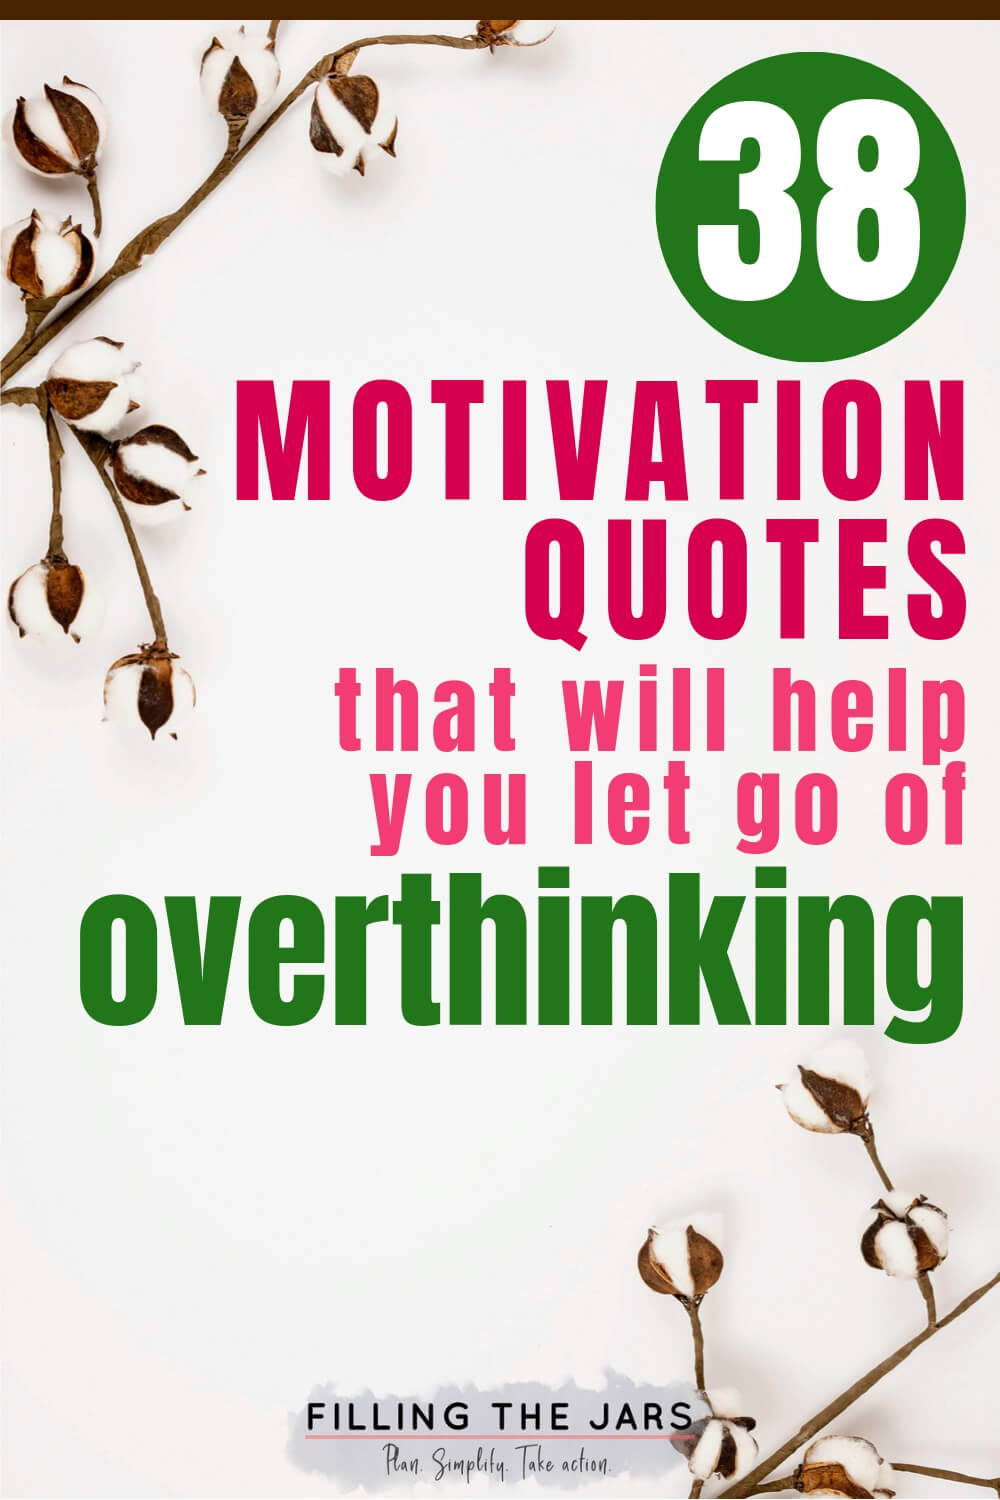 raw cotton against white background with text motivation quotes to let go of overthinking